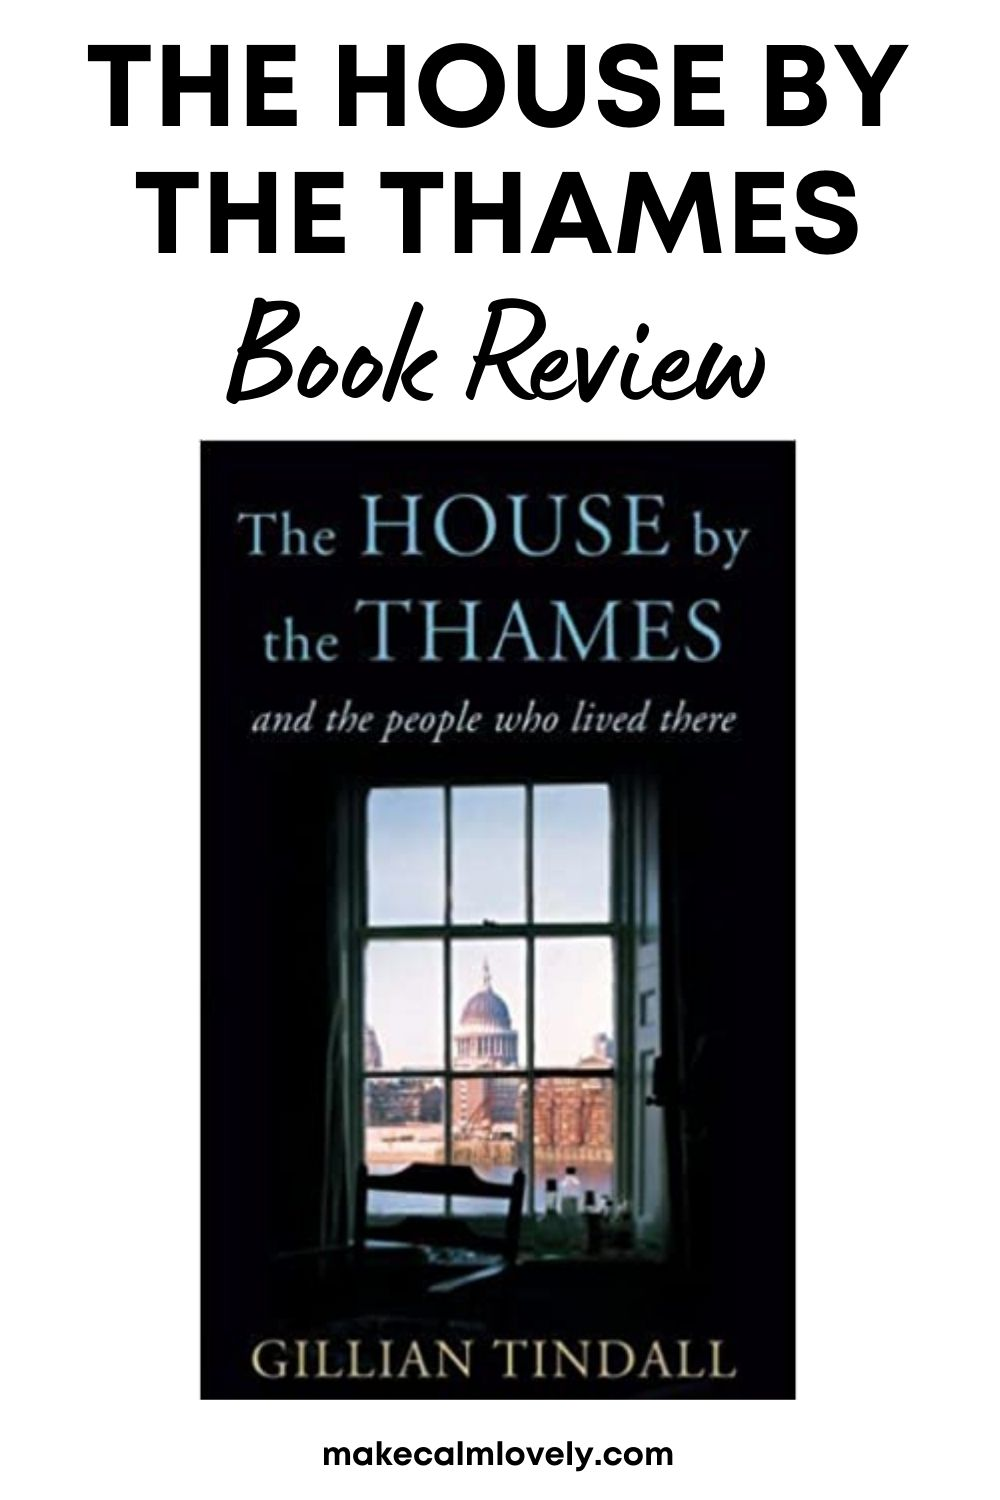 Picture of front cover of The House by the Thames book.